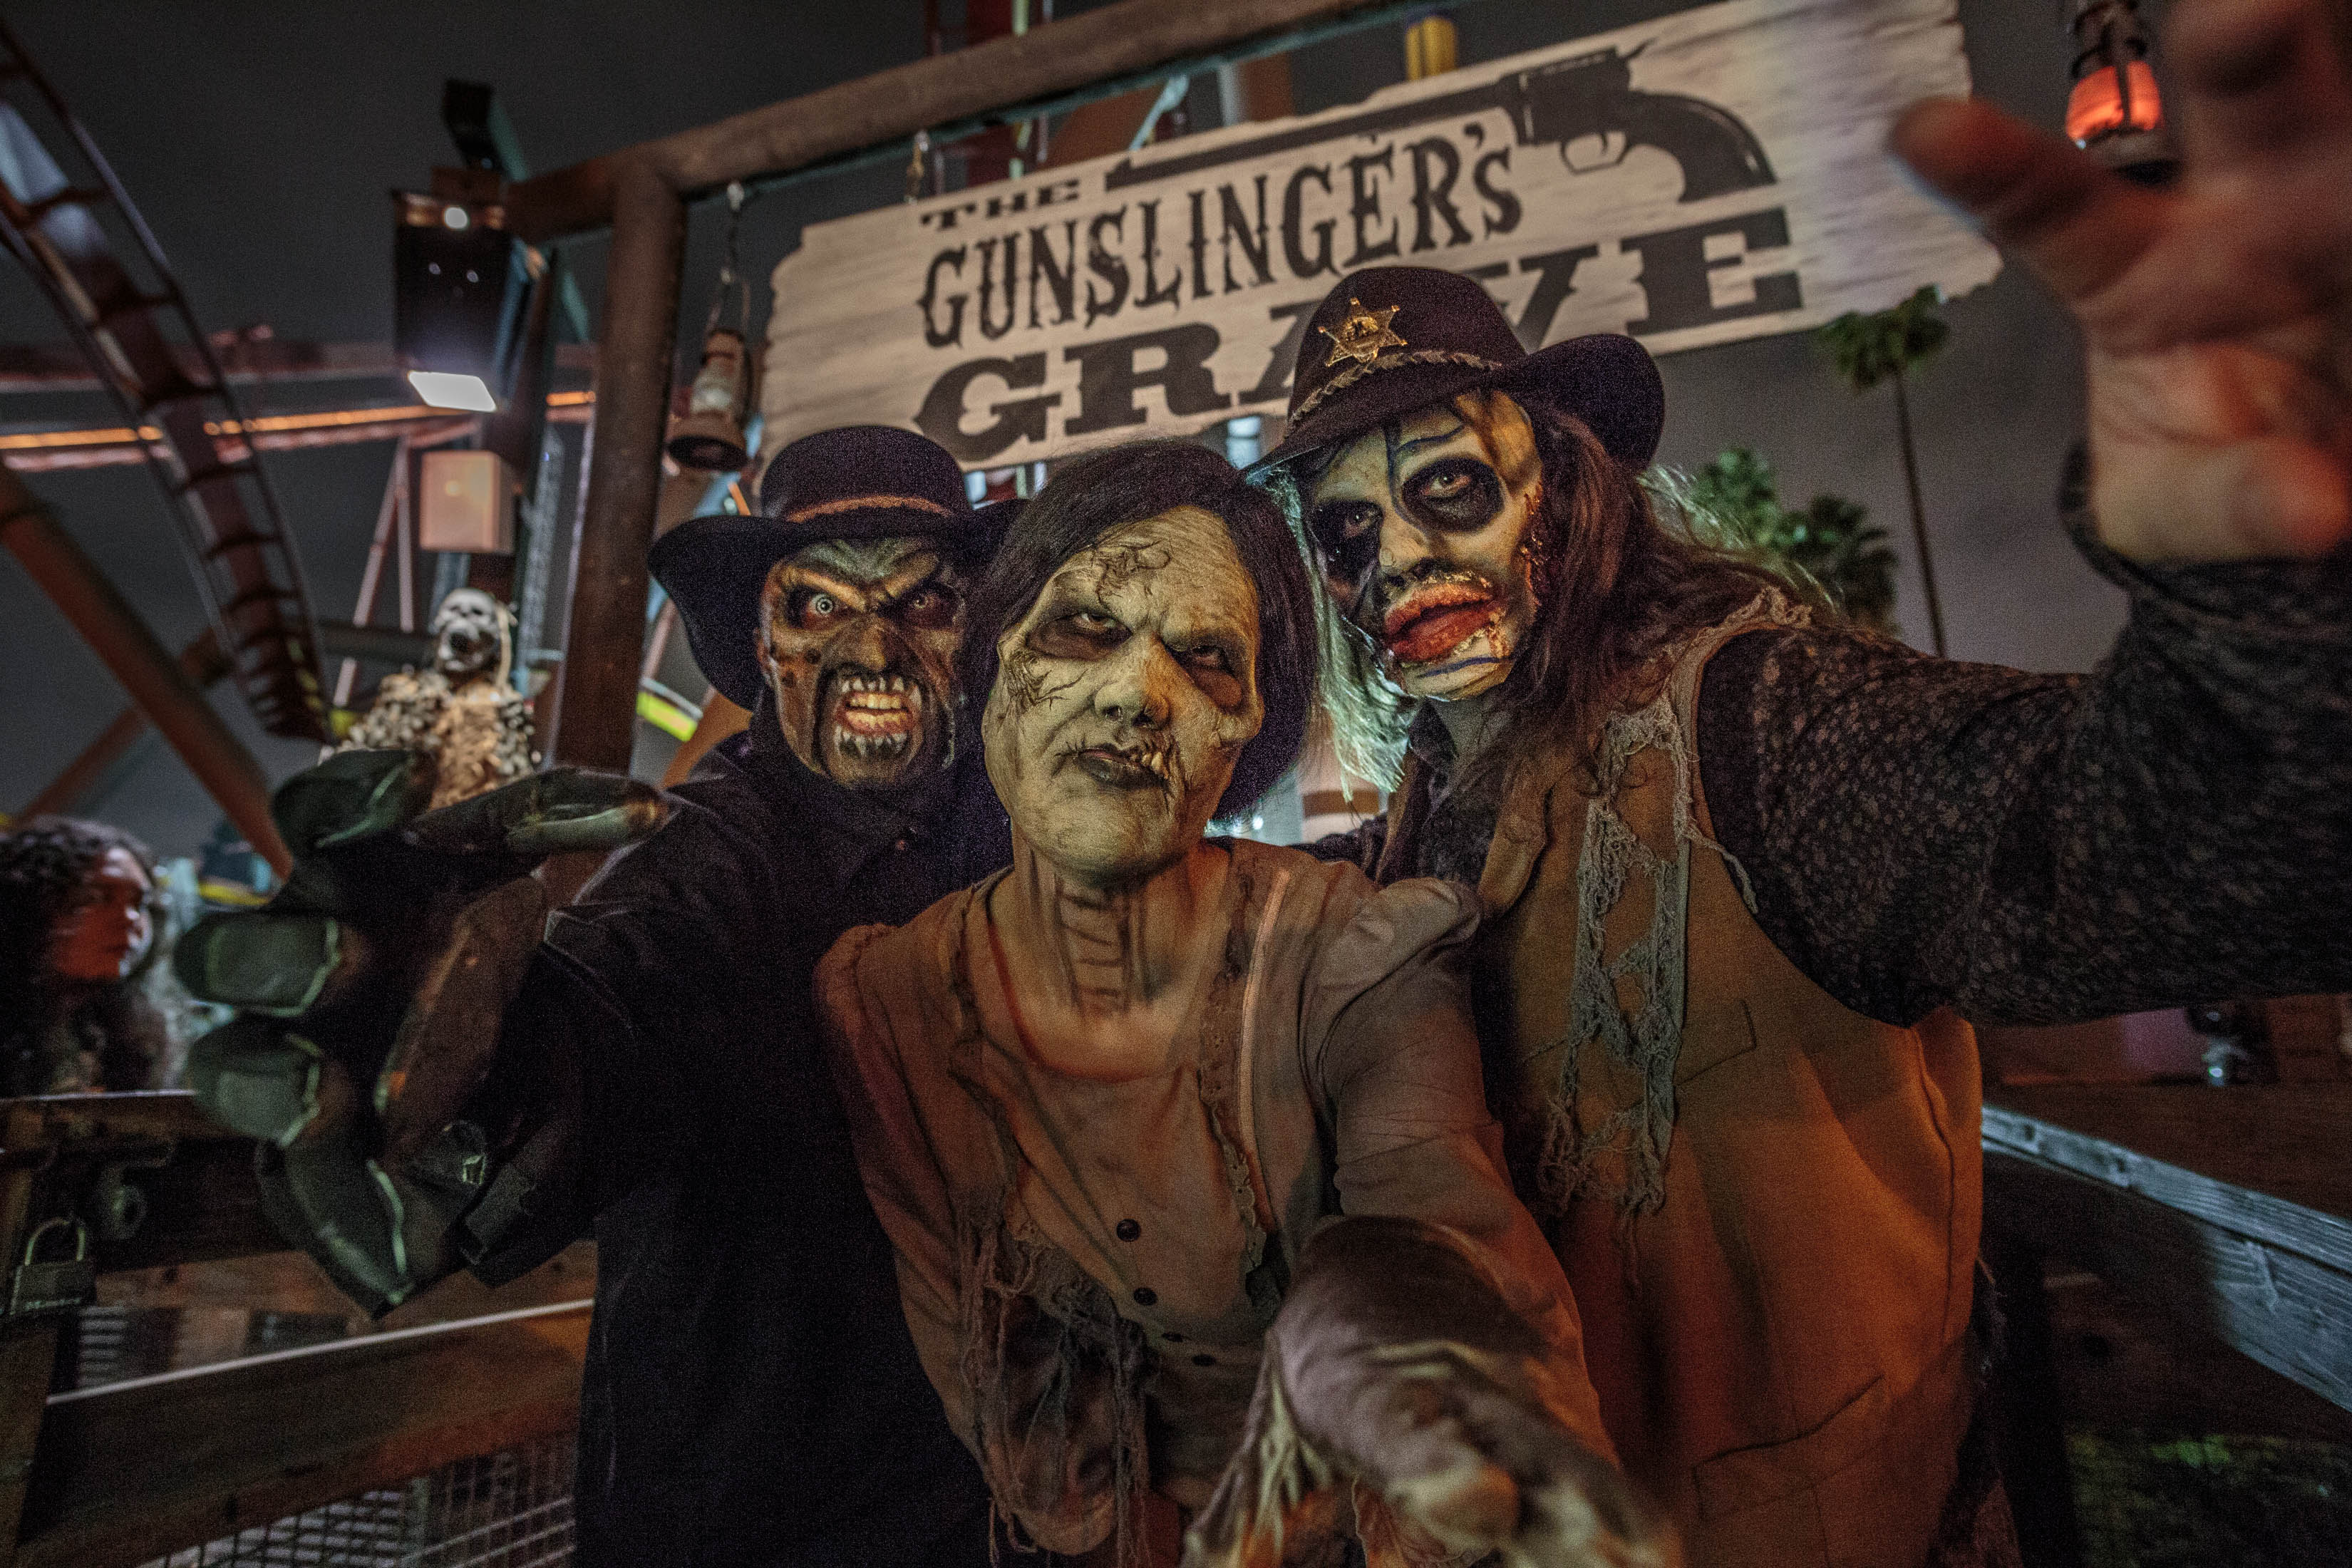 Knotts Scary Farm | Gunslinger's Grave